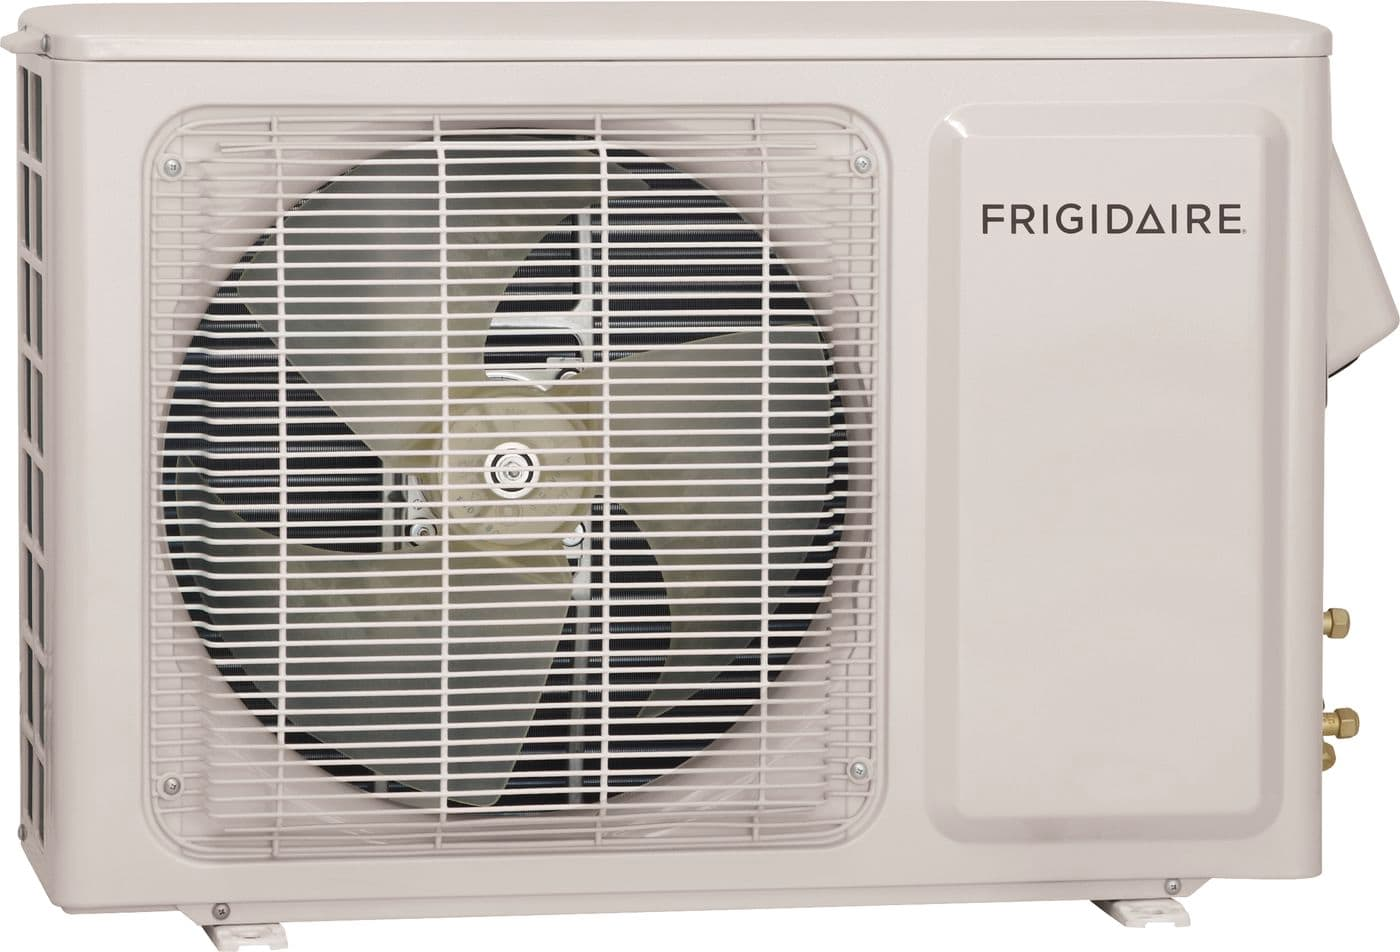 Model: FFHP123SS2 | Frigidaire Ductless Split Air Conditioner with Heat Pump 12,000 BTU 230V